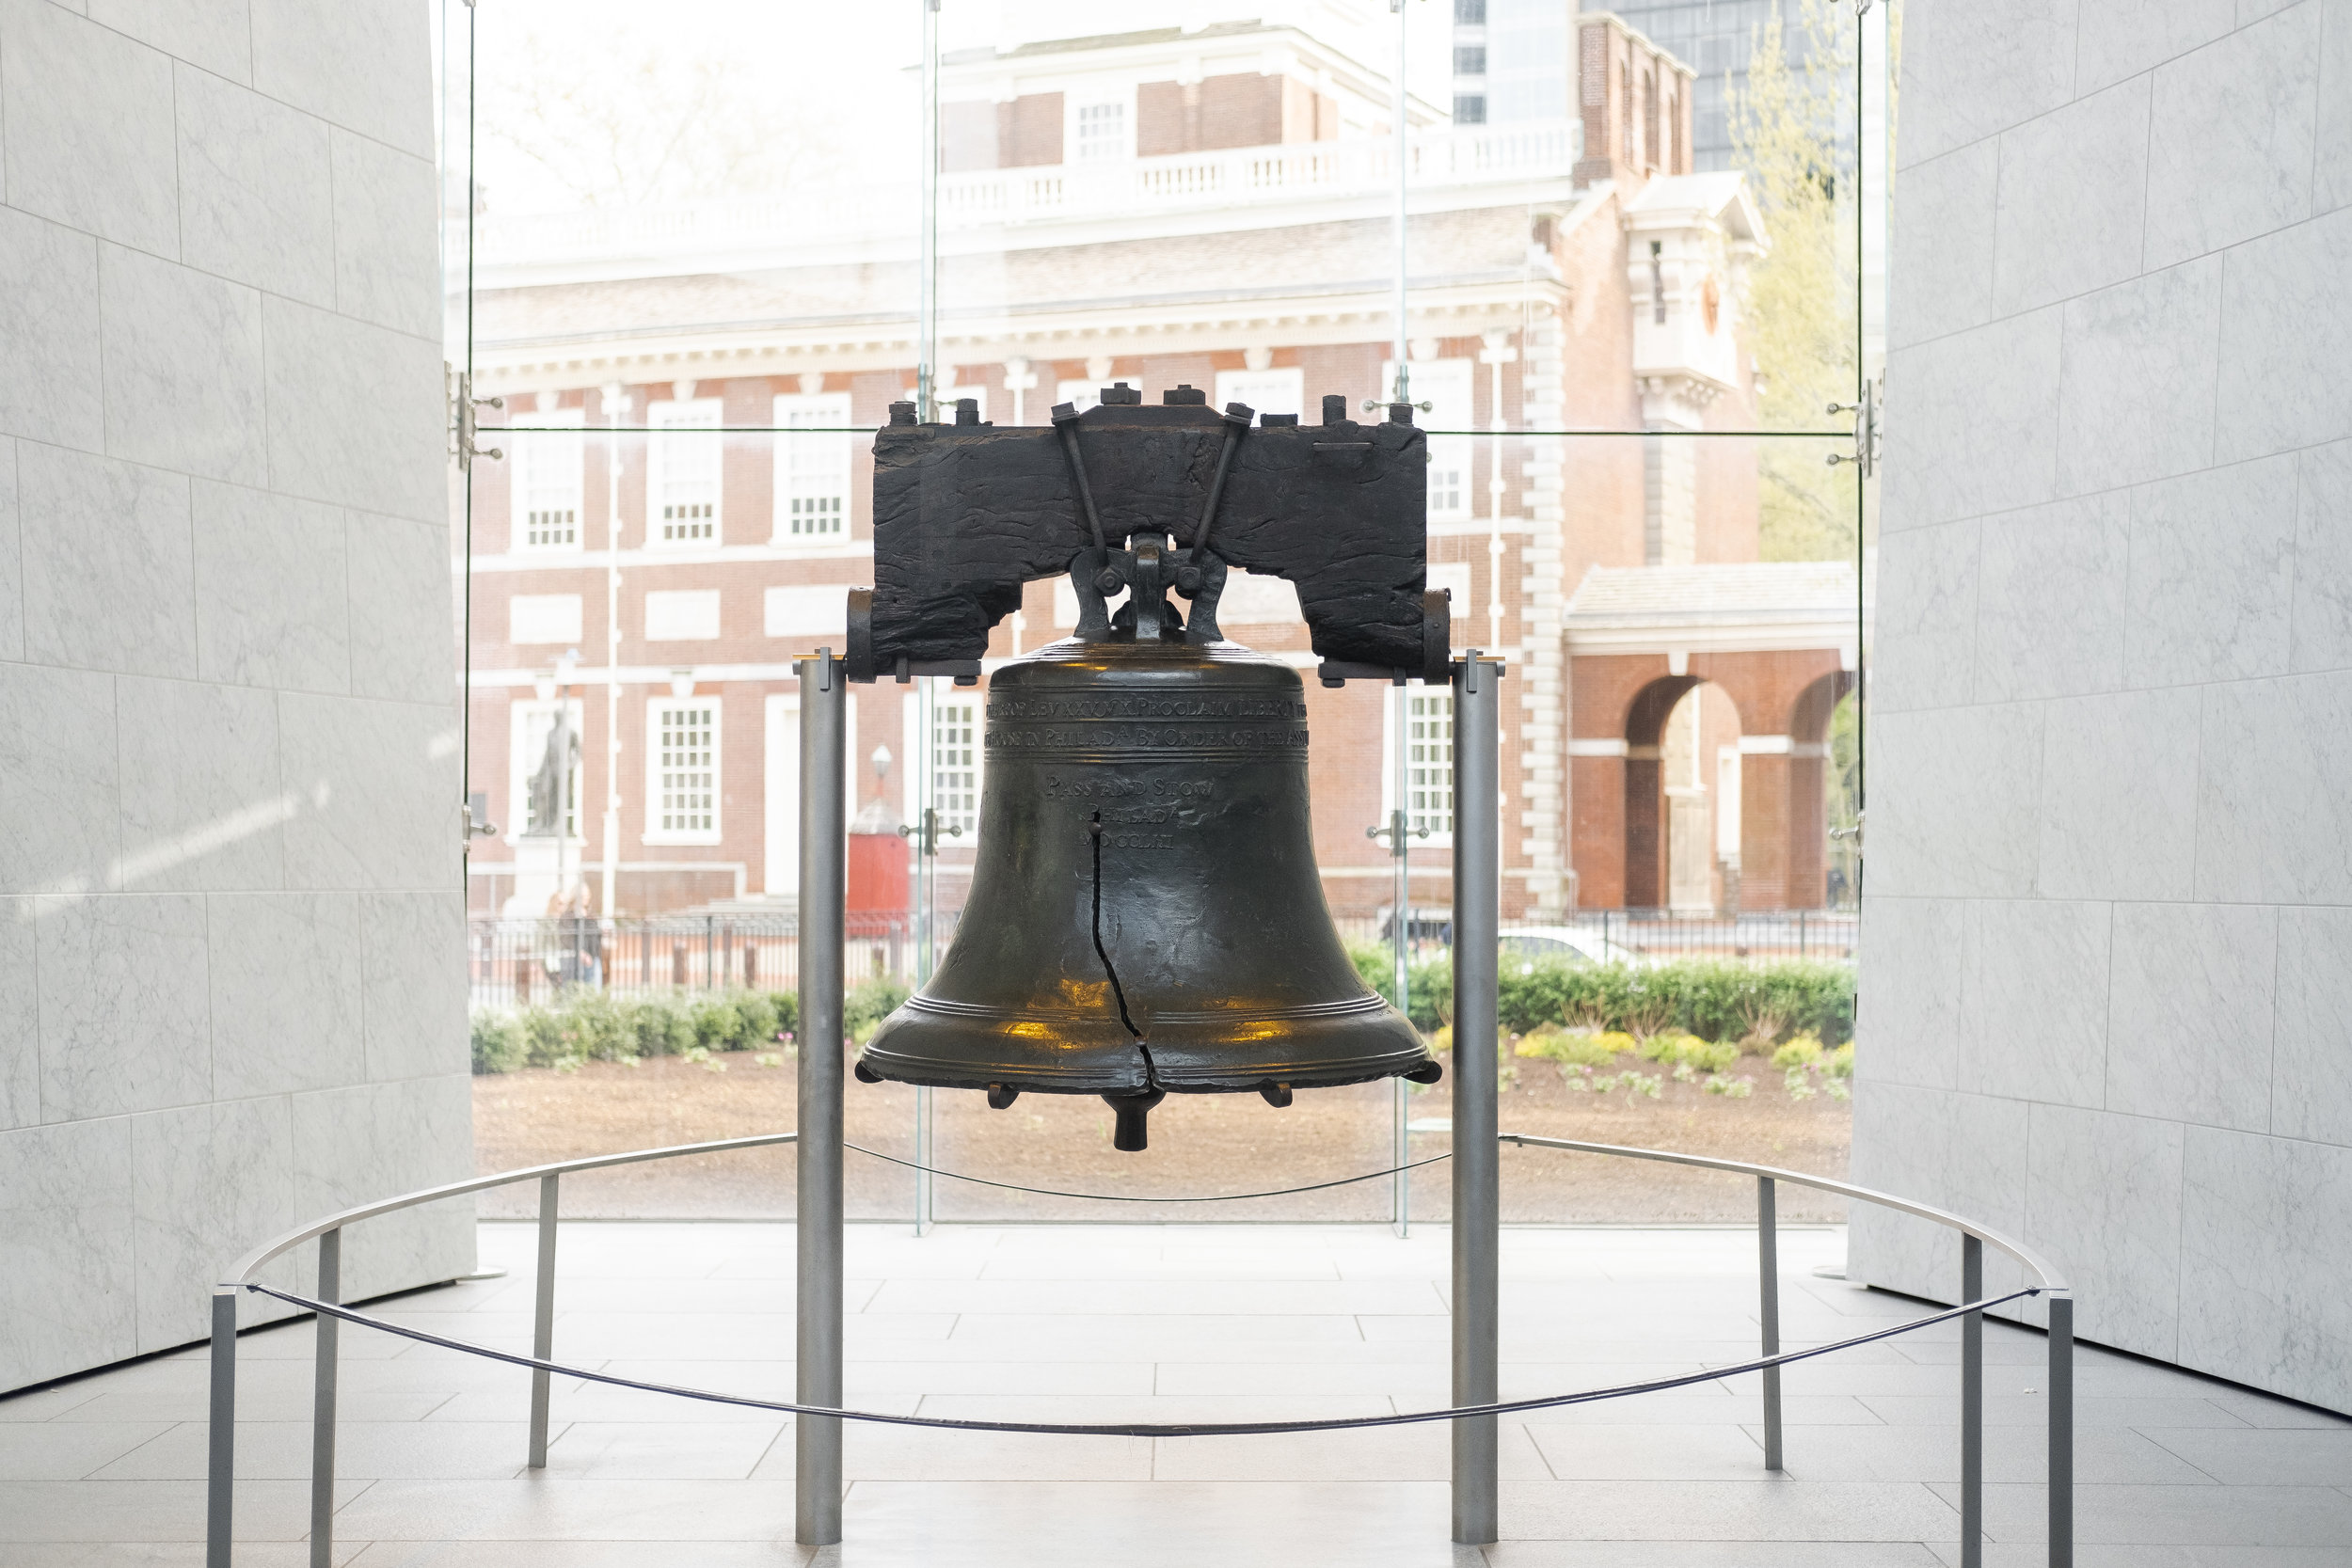 2019_LIBERTY BELL_THE PHILLY CHECKLIST_FINAL-15.jpg